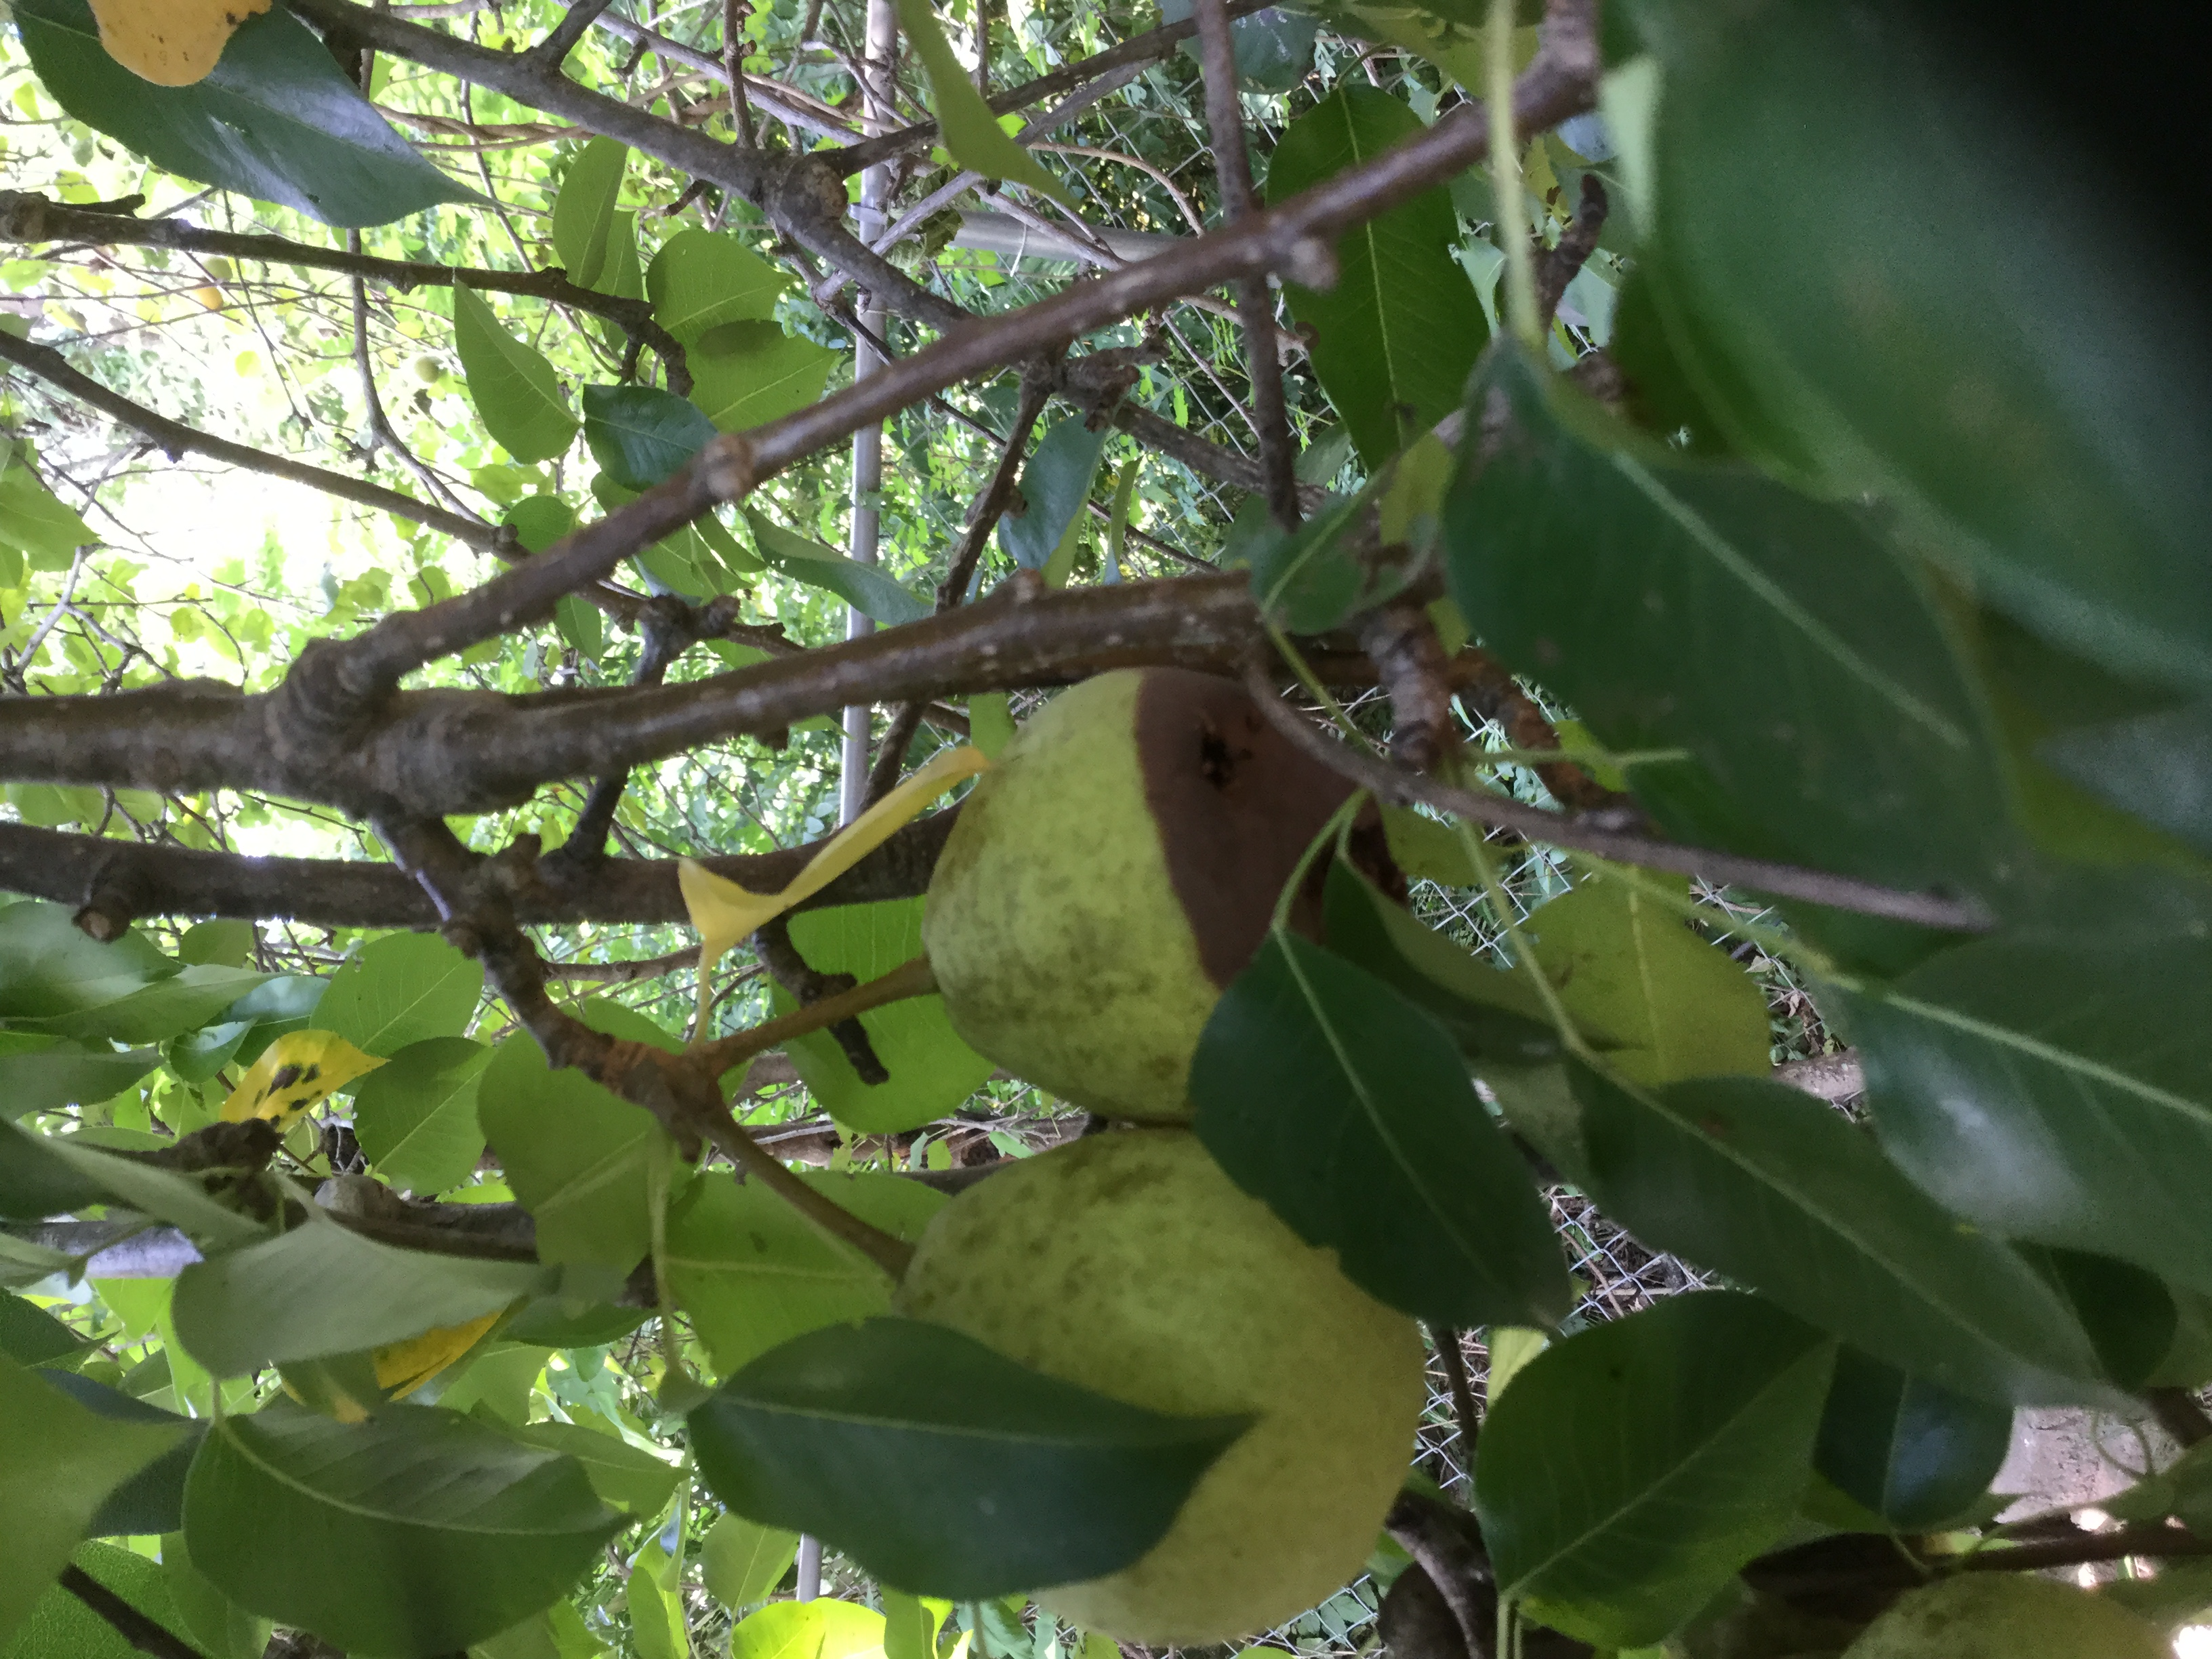 Pears on tree turning brown at the base